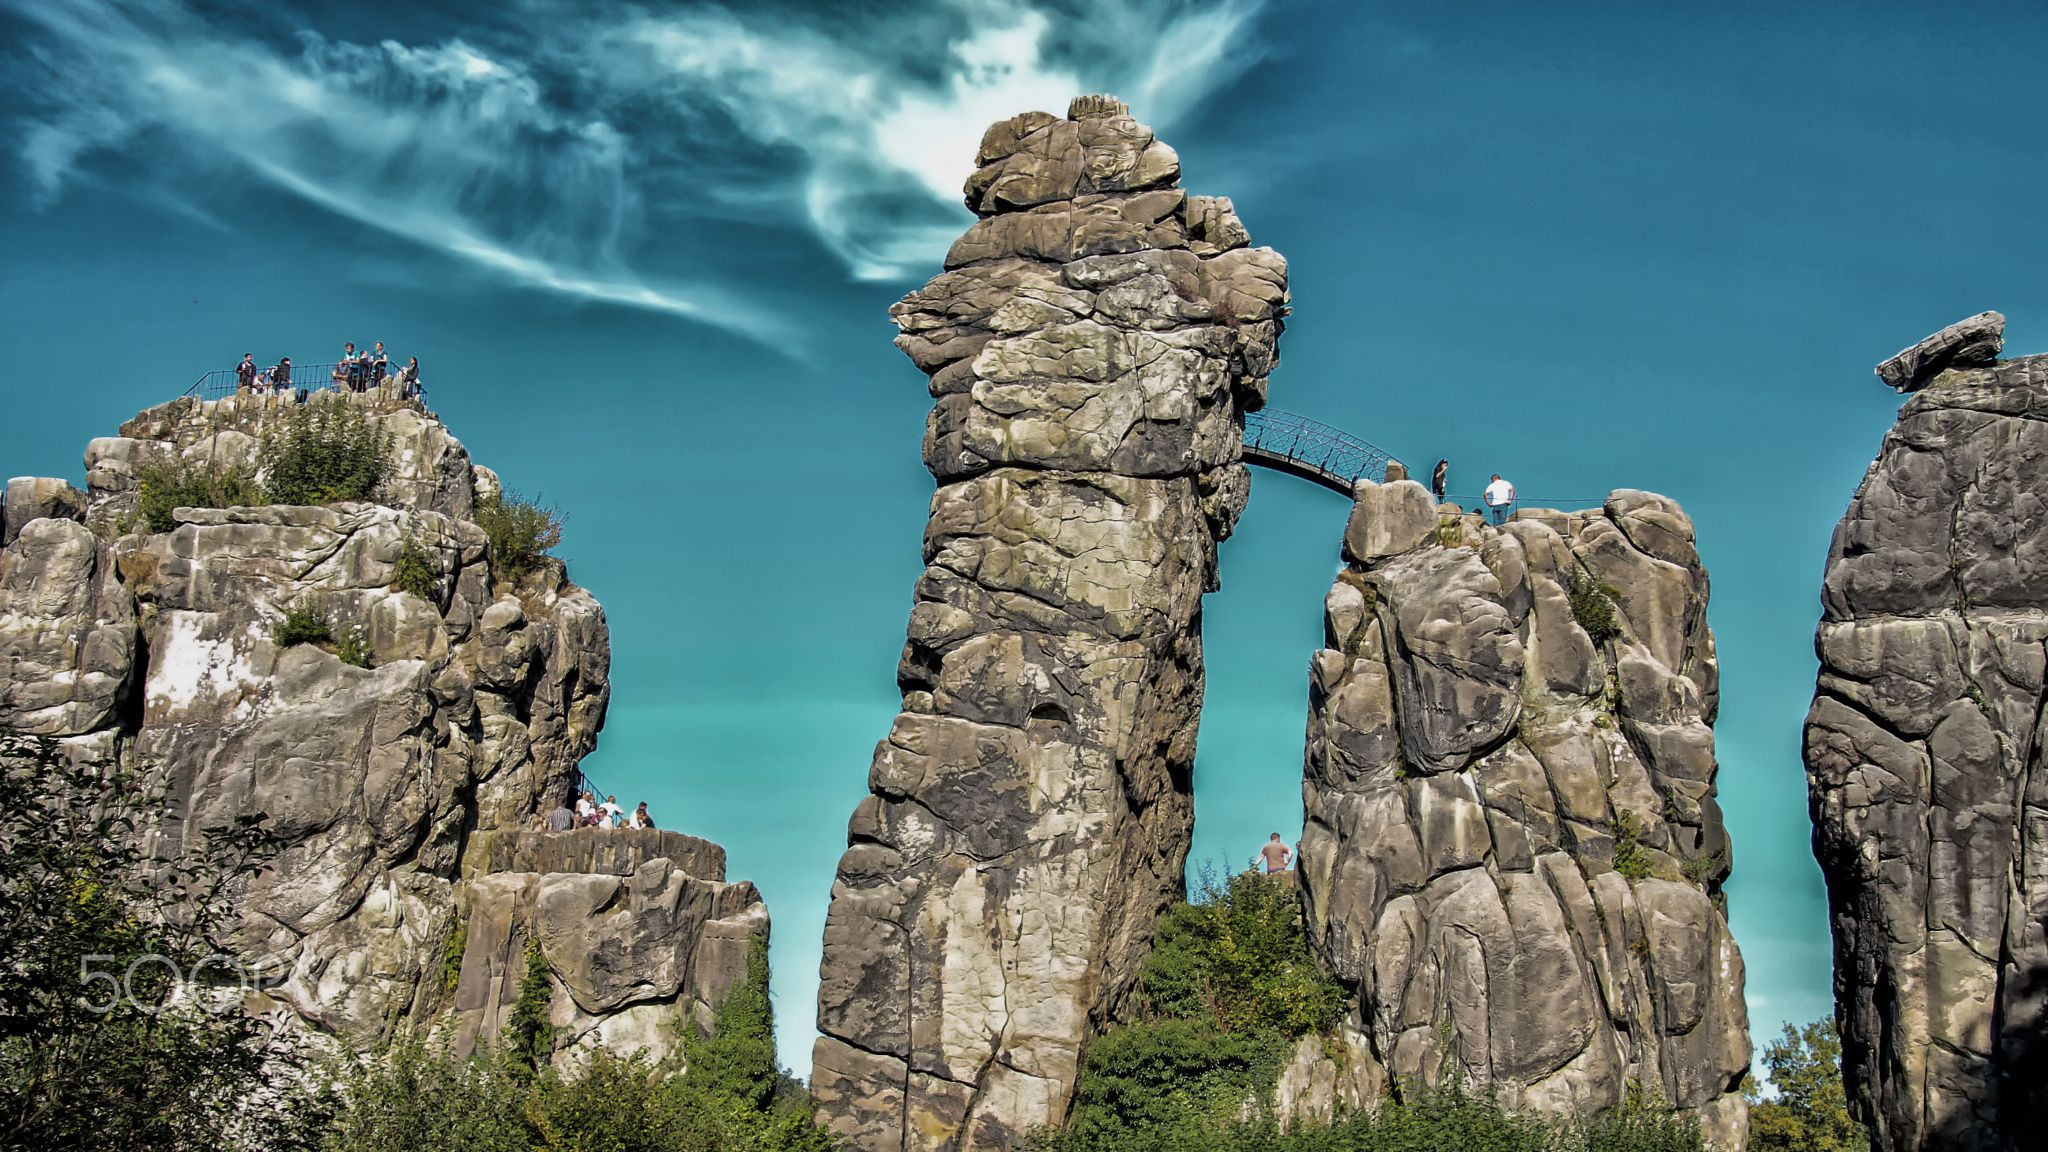 Externsteine in Germany #landscape #nature